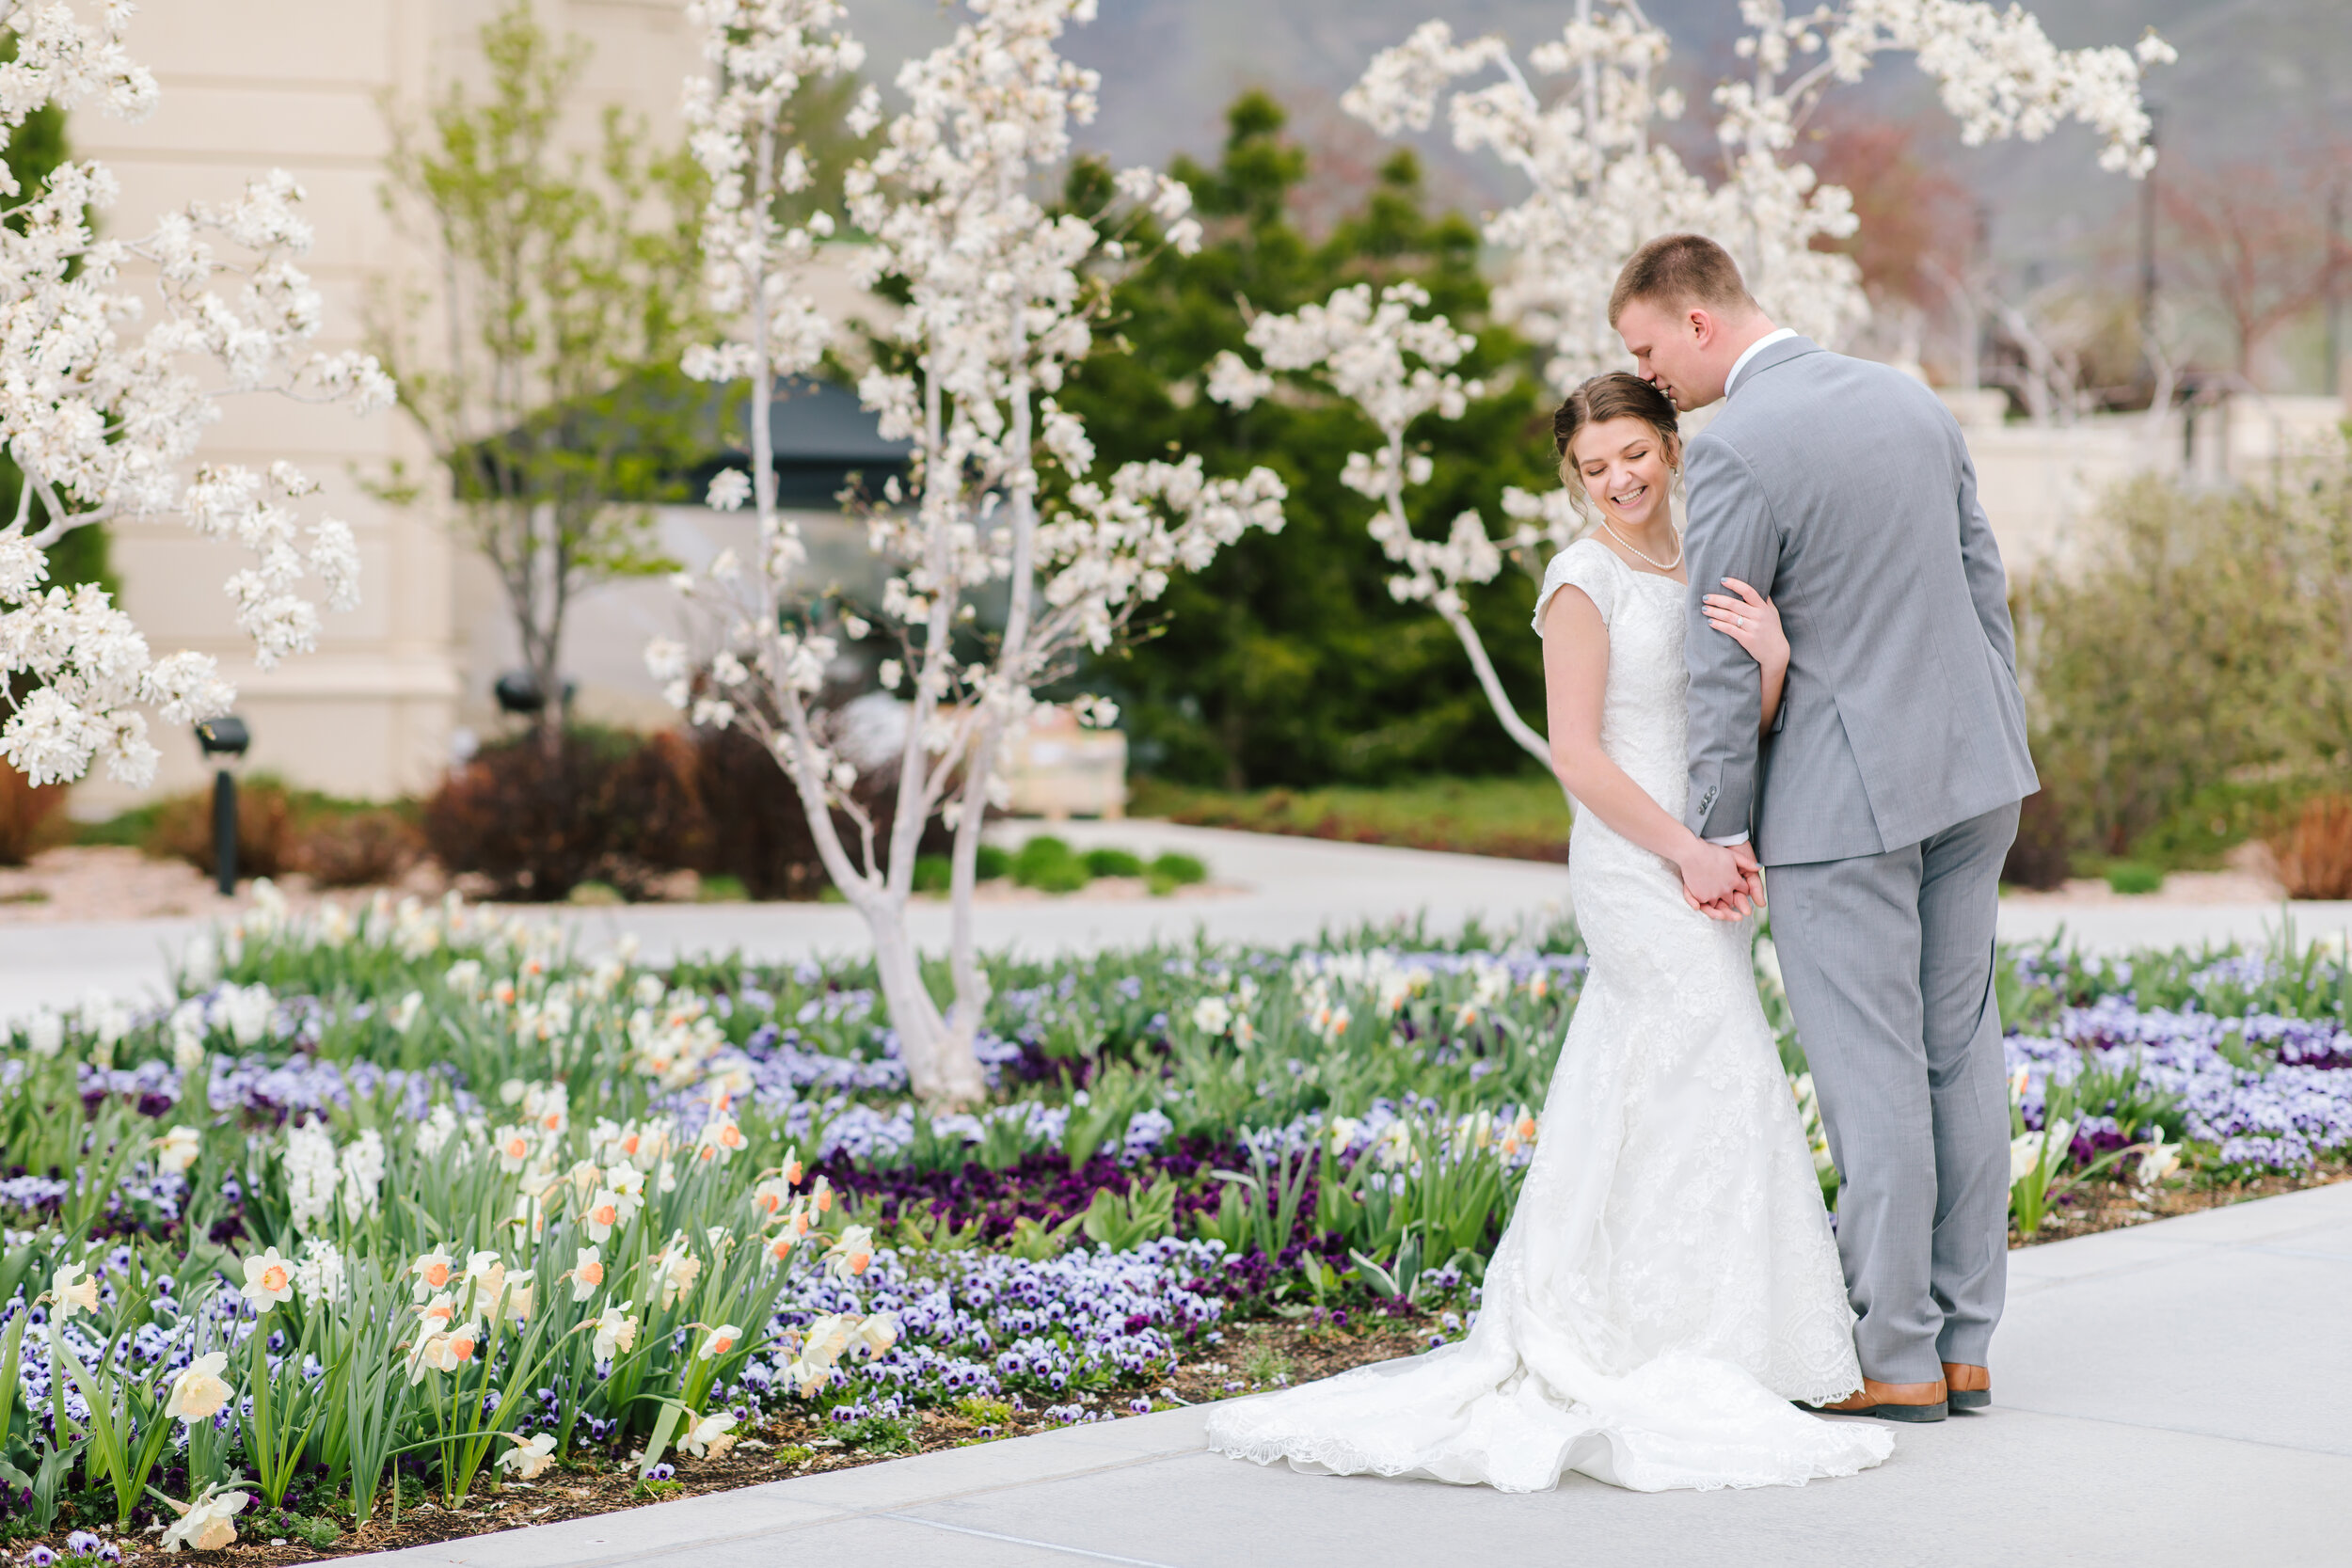 modest wedding dress inspiration lace wedding dress tulip sleeved wedding dress couple pose inspiration husband and wife grey suit mens wedding outfit inspiration payson temple grounds lds temple beautiful flowers men and women wedding outfit inspiration lds bridals bridal session #weddingsession #weddinginspo #ldswedding #ldsbride #couplegoals #paysontemple #temple #profressionalphotographer #utah #love